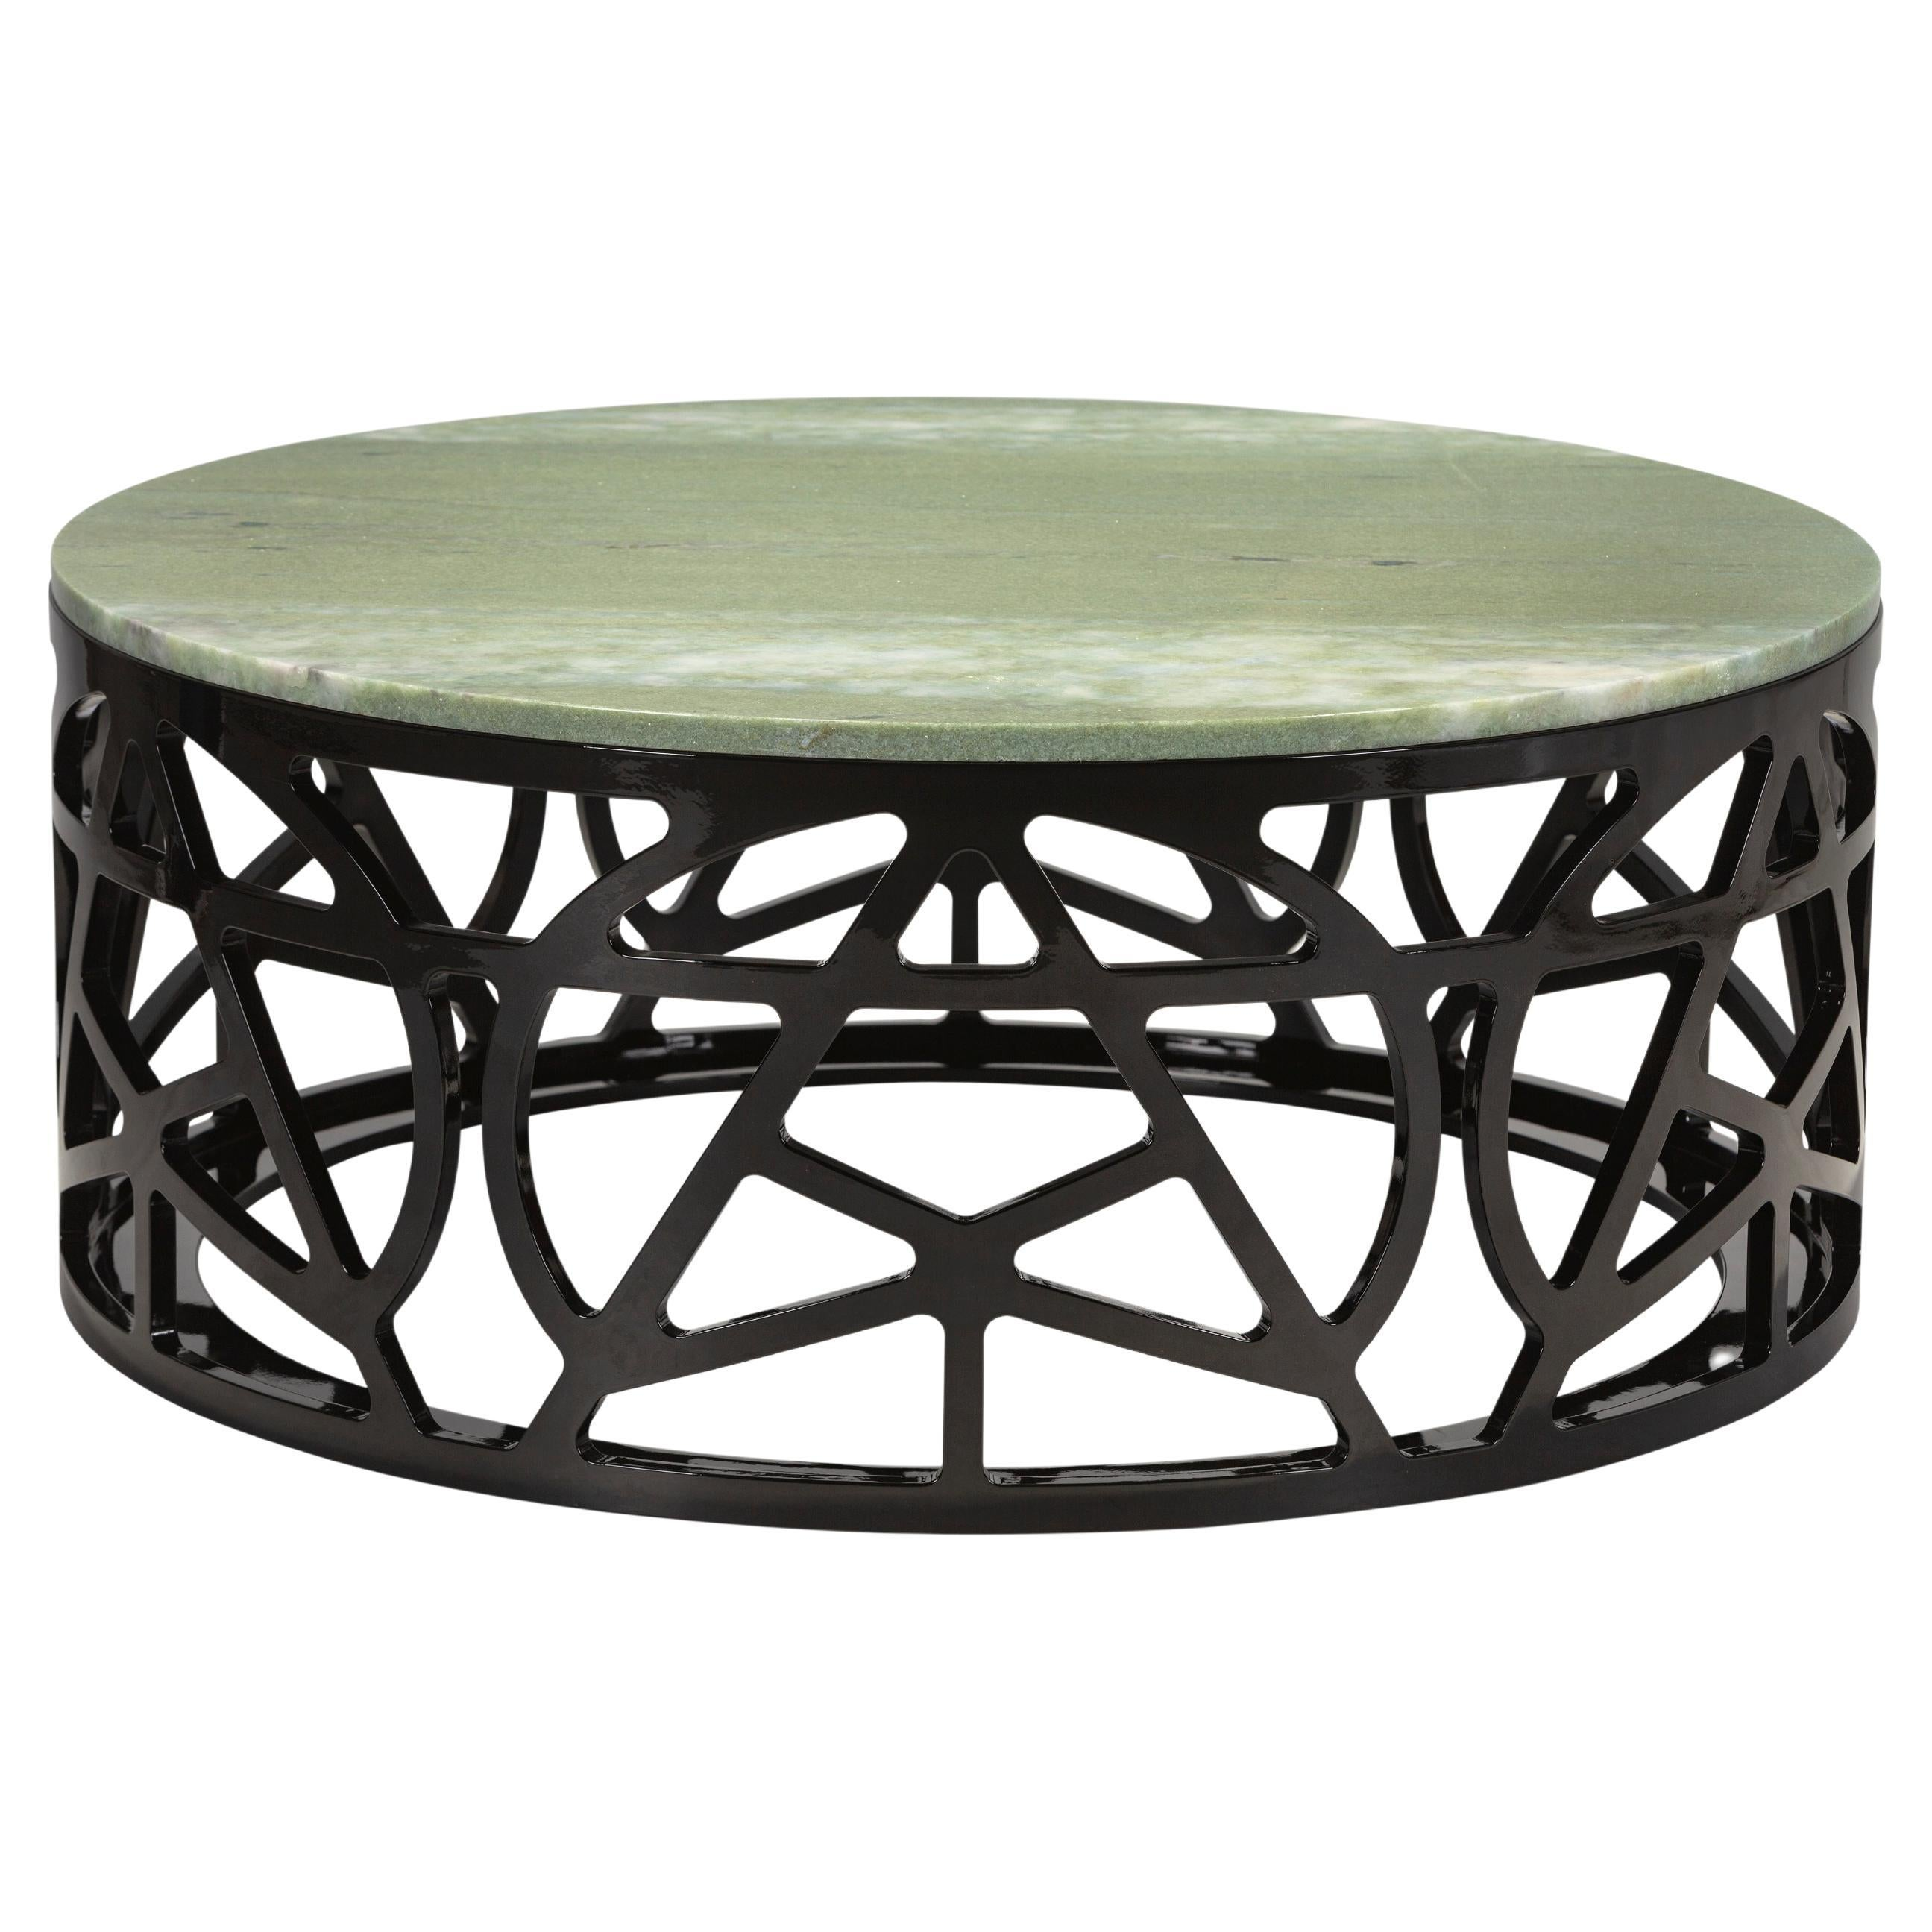 21st Century Pyrite Coffee Table Handcrafted in Portugal by Greenapple